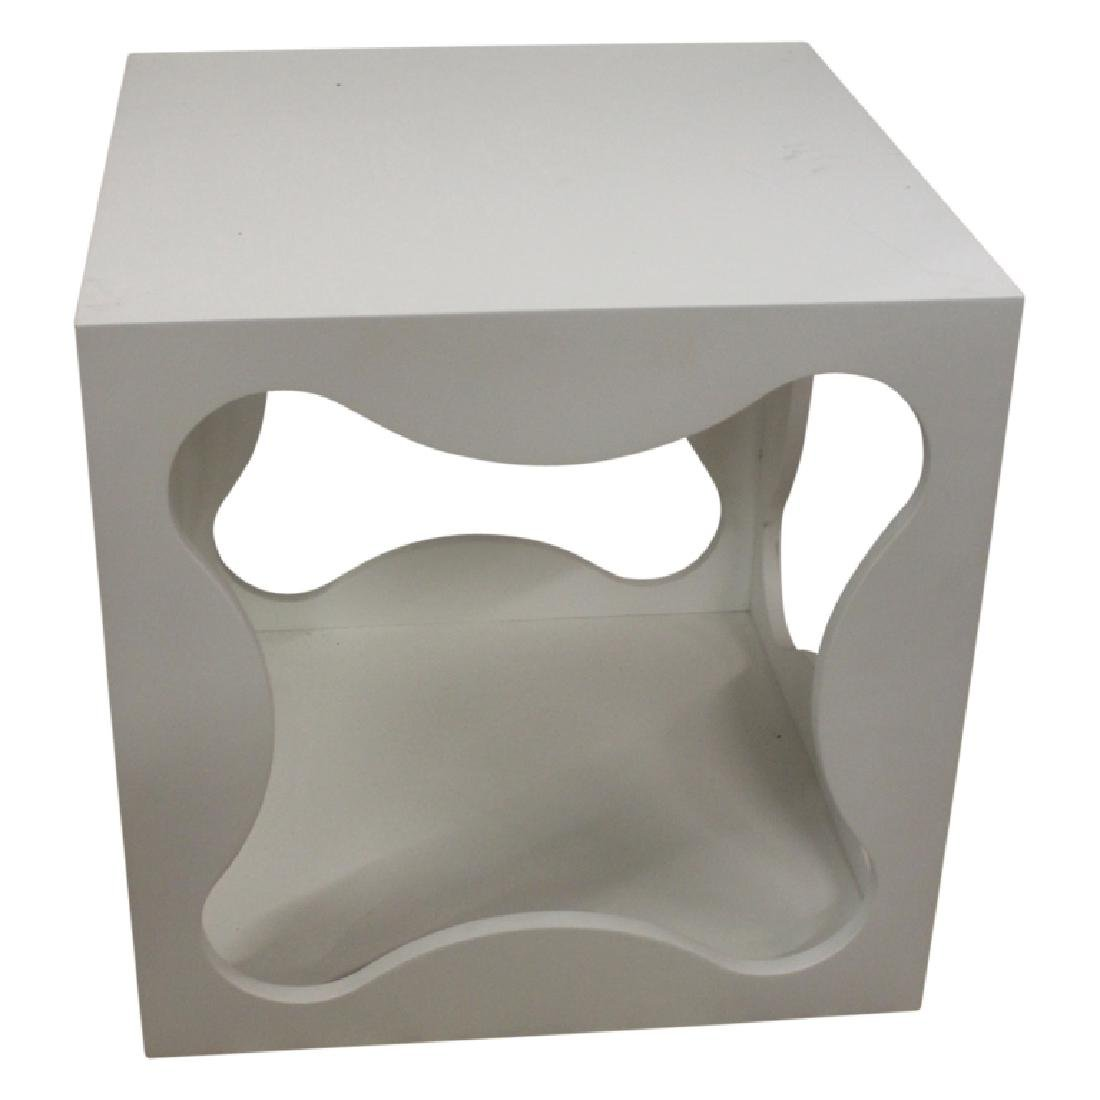 Pair of Modern Square Table Cubes - 3